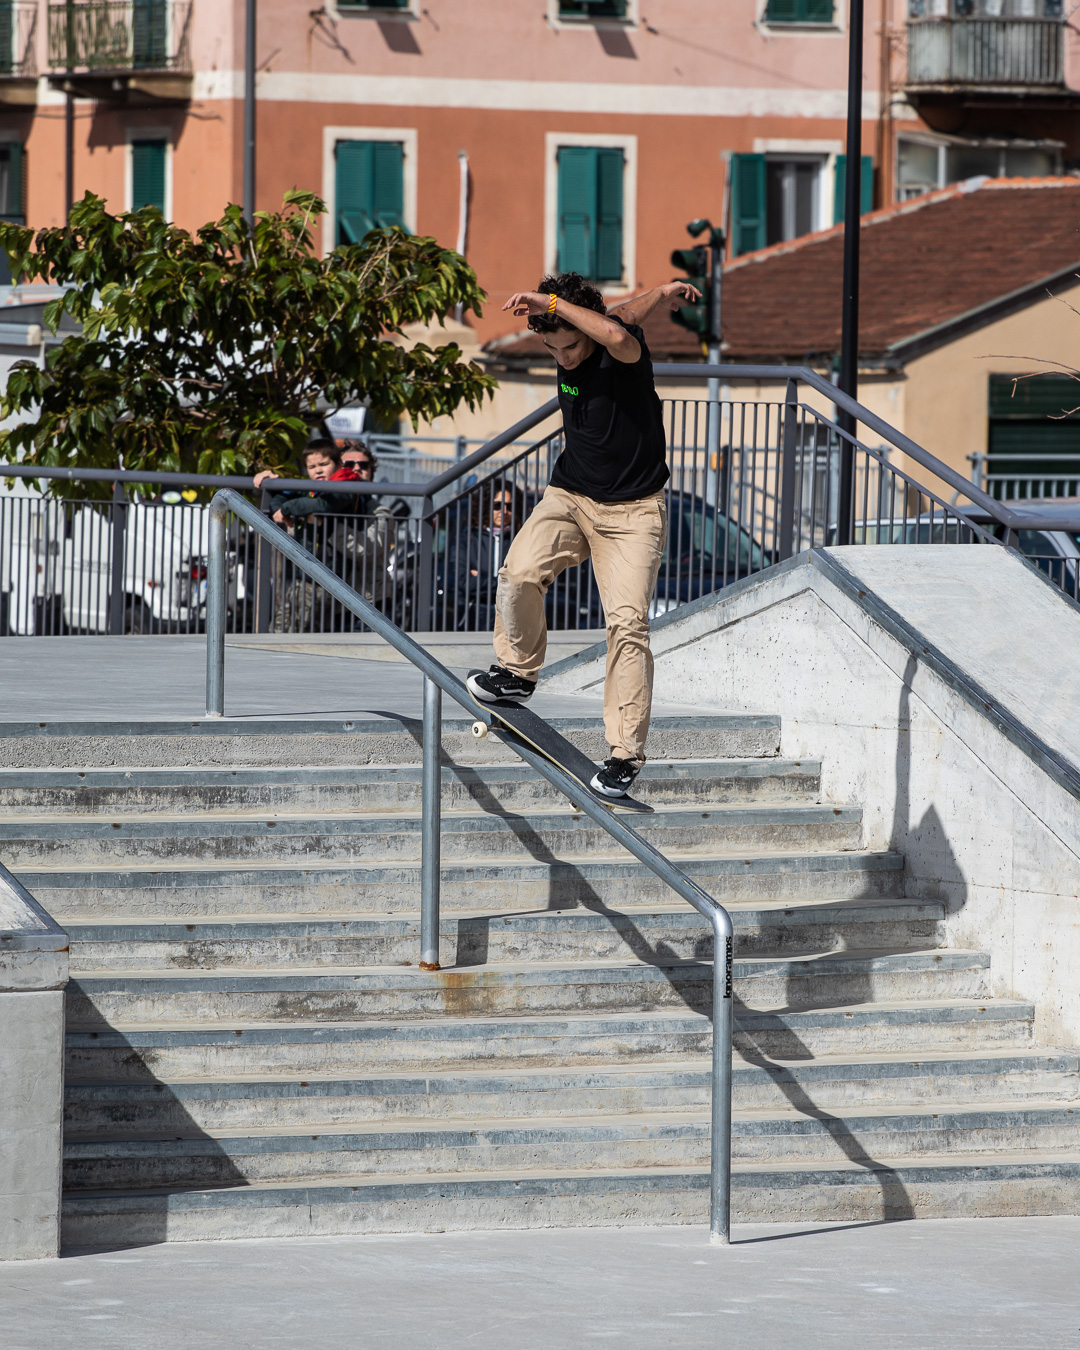 CIS Street 2020 - Luca Bonetti fs smith - ph. Federico Romanello